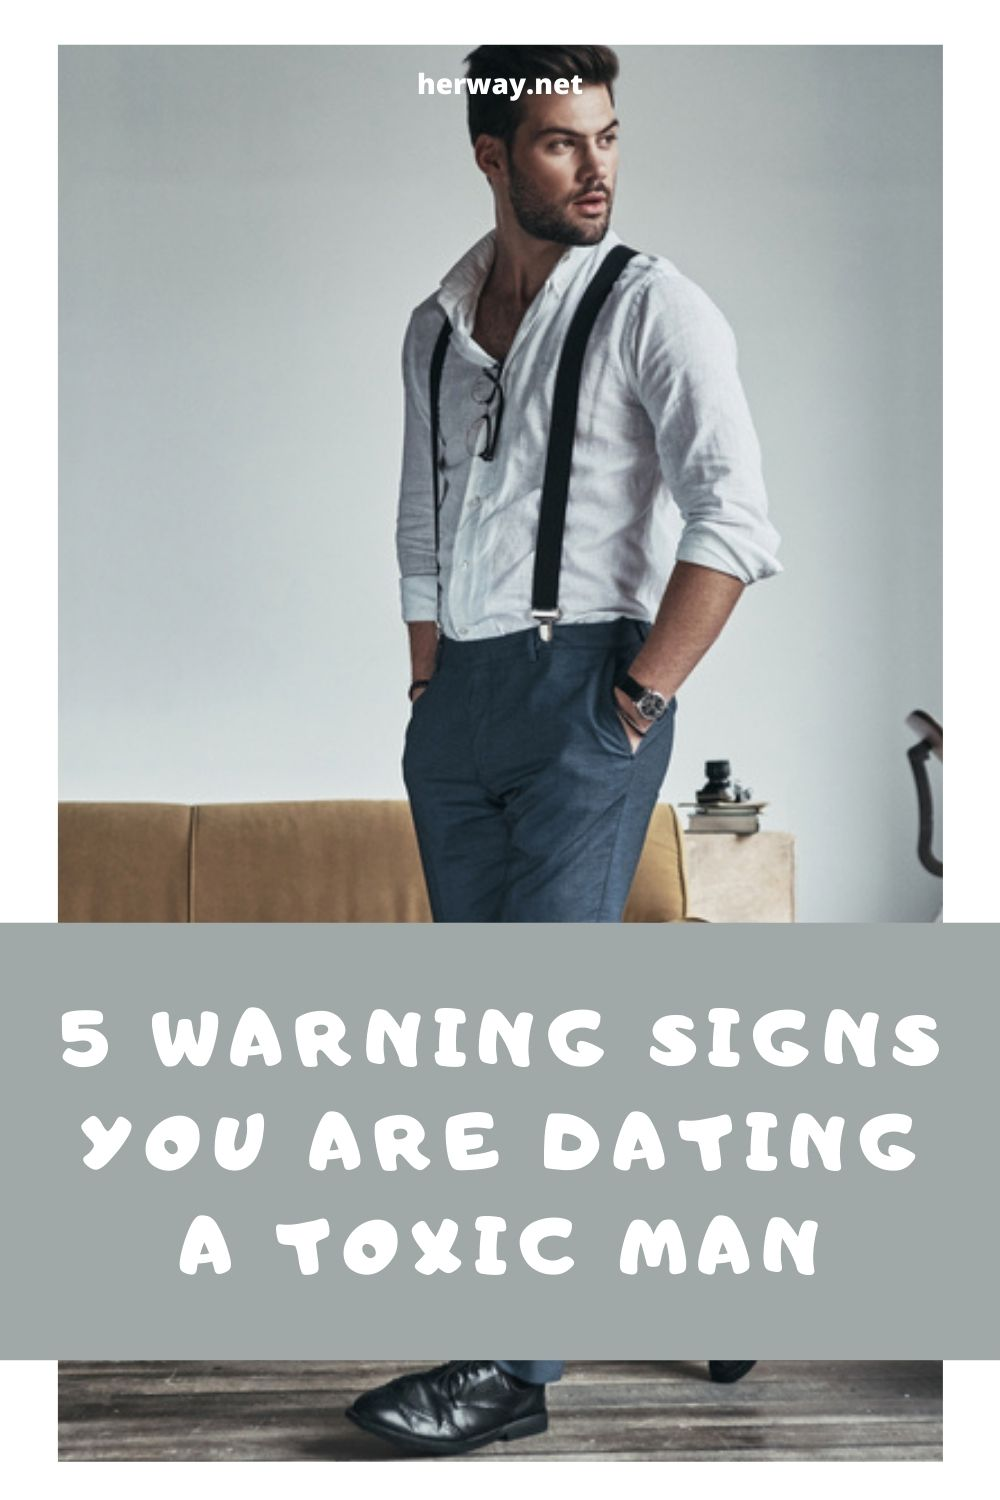 5 Warning Signs You Are Dating A Toxic Man